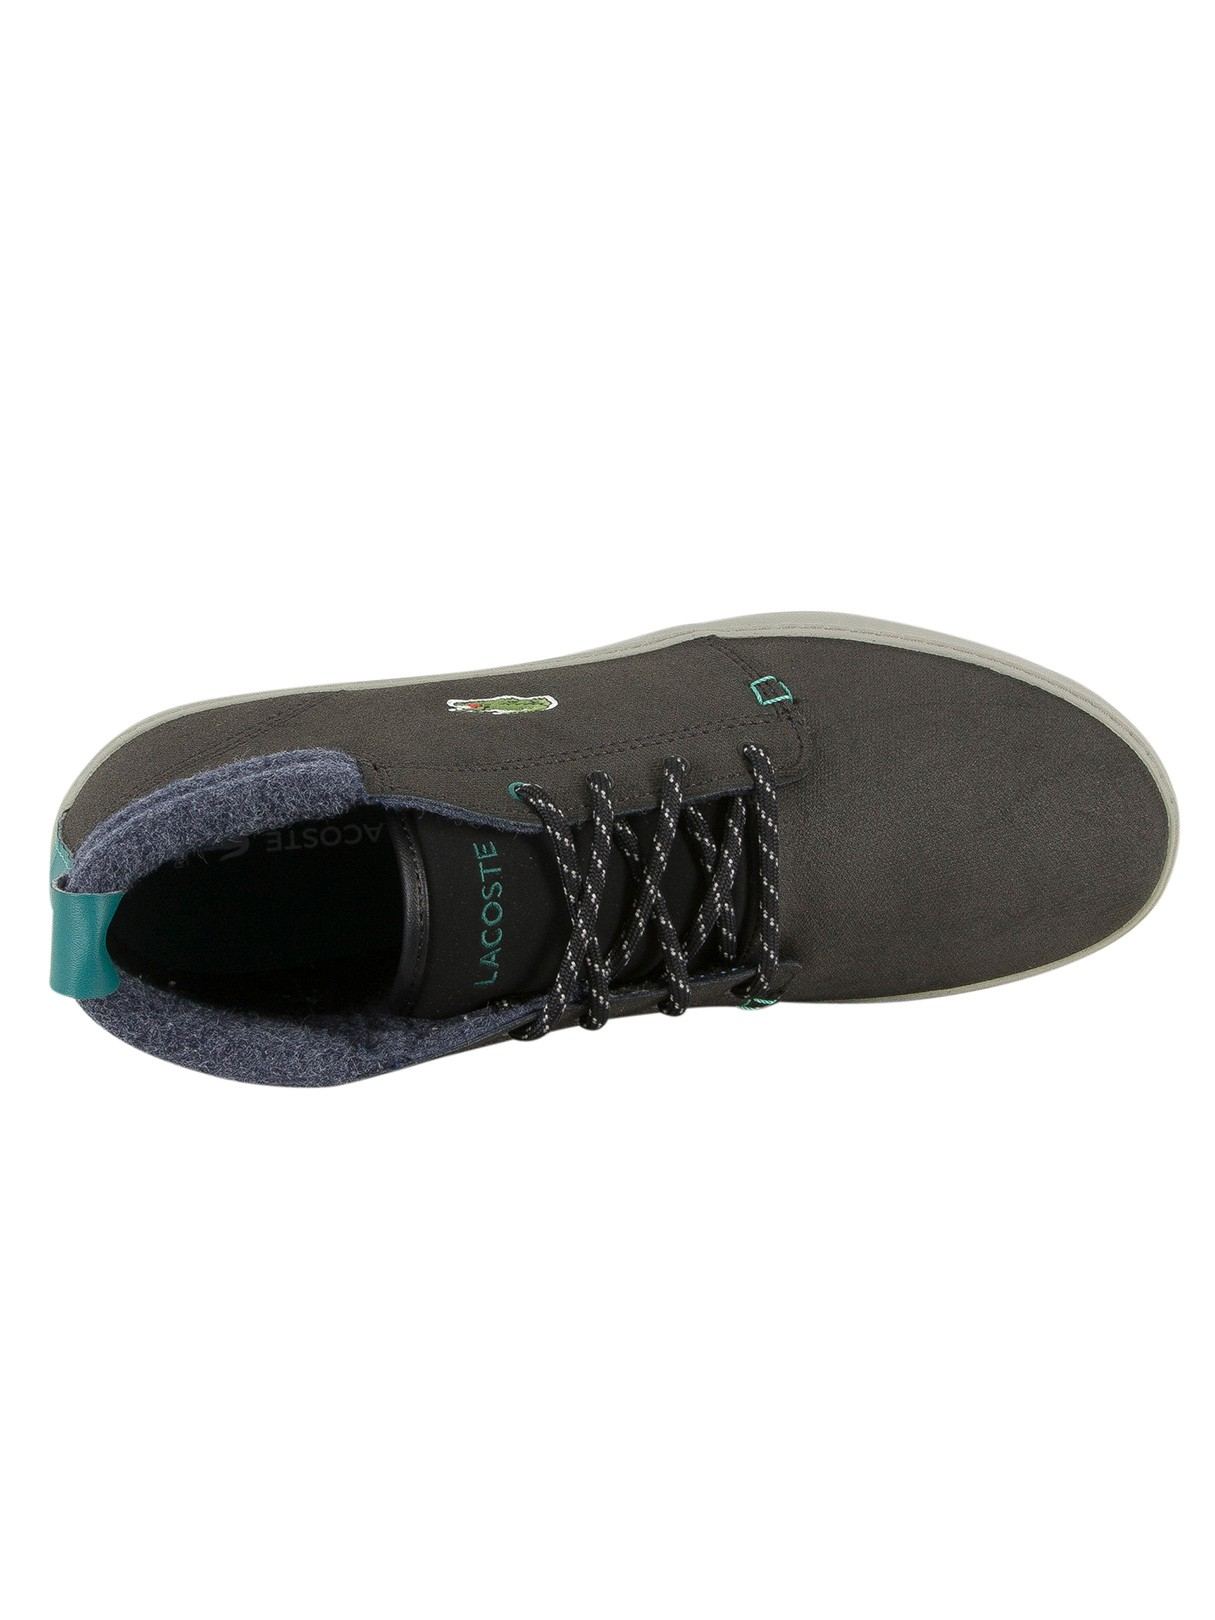 02115f4f45621 Lacoste Black Ampthill Terra 417 1 CAM Leather Trainers